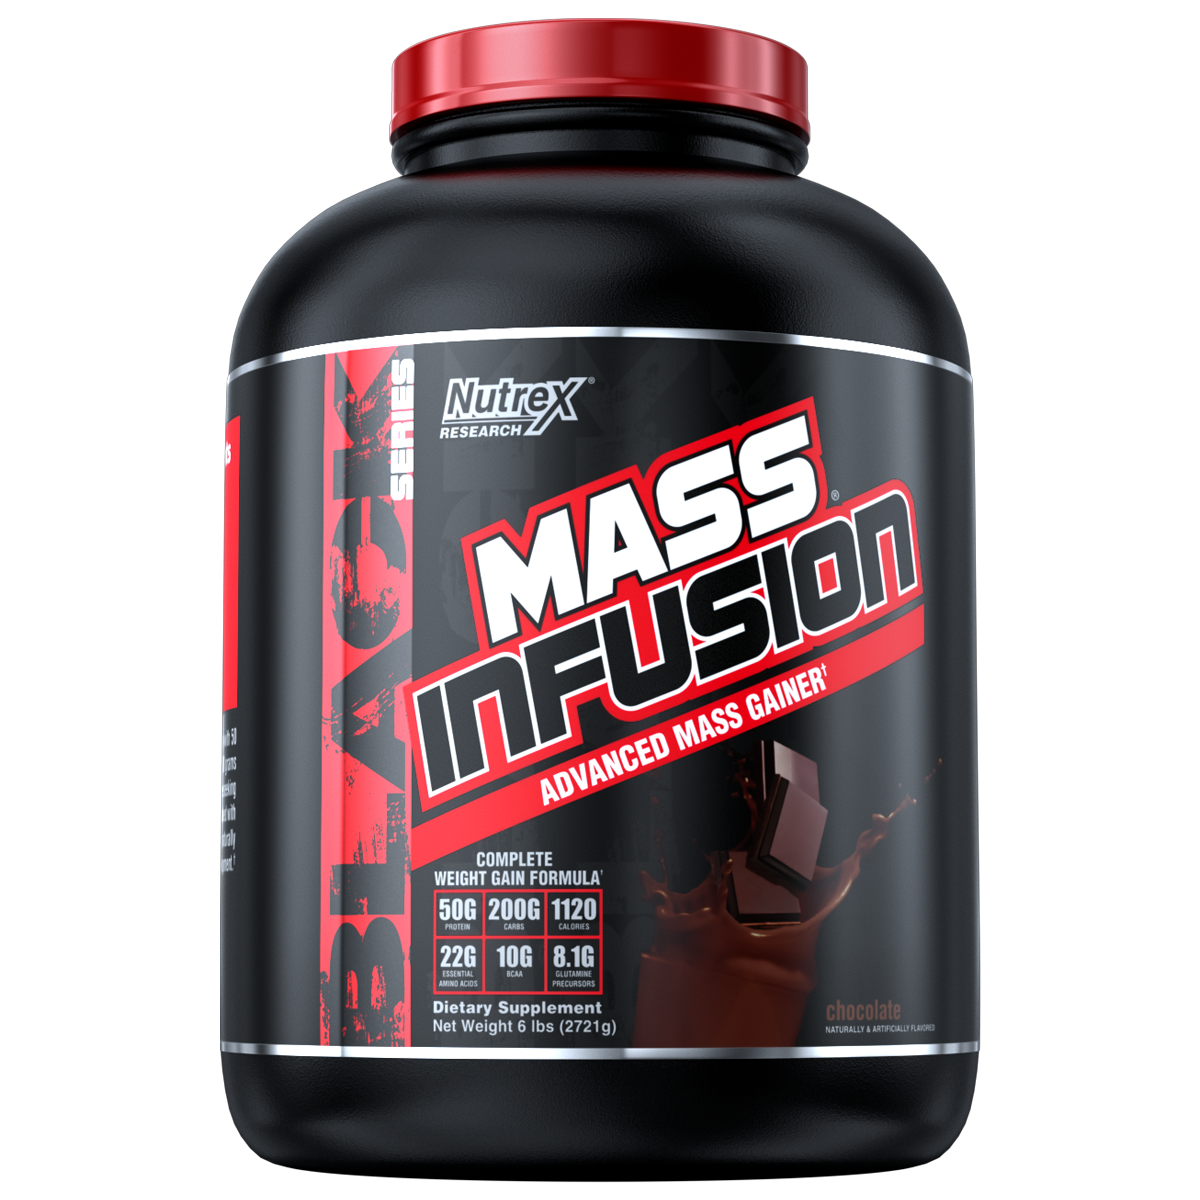 Nutrex Research Mass Infusion Weight Gainer and Muscle Build